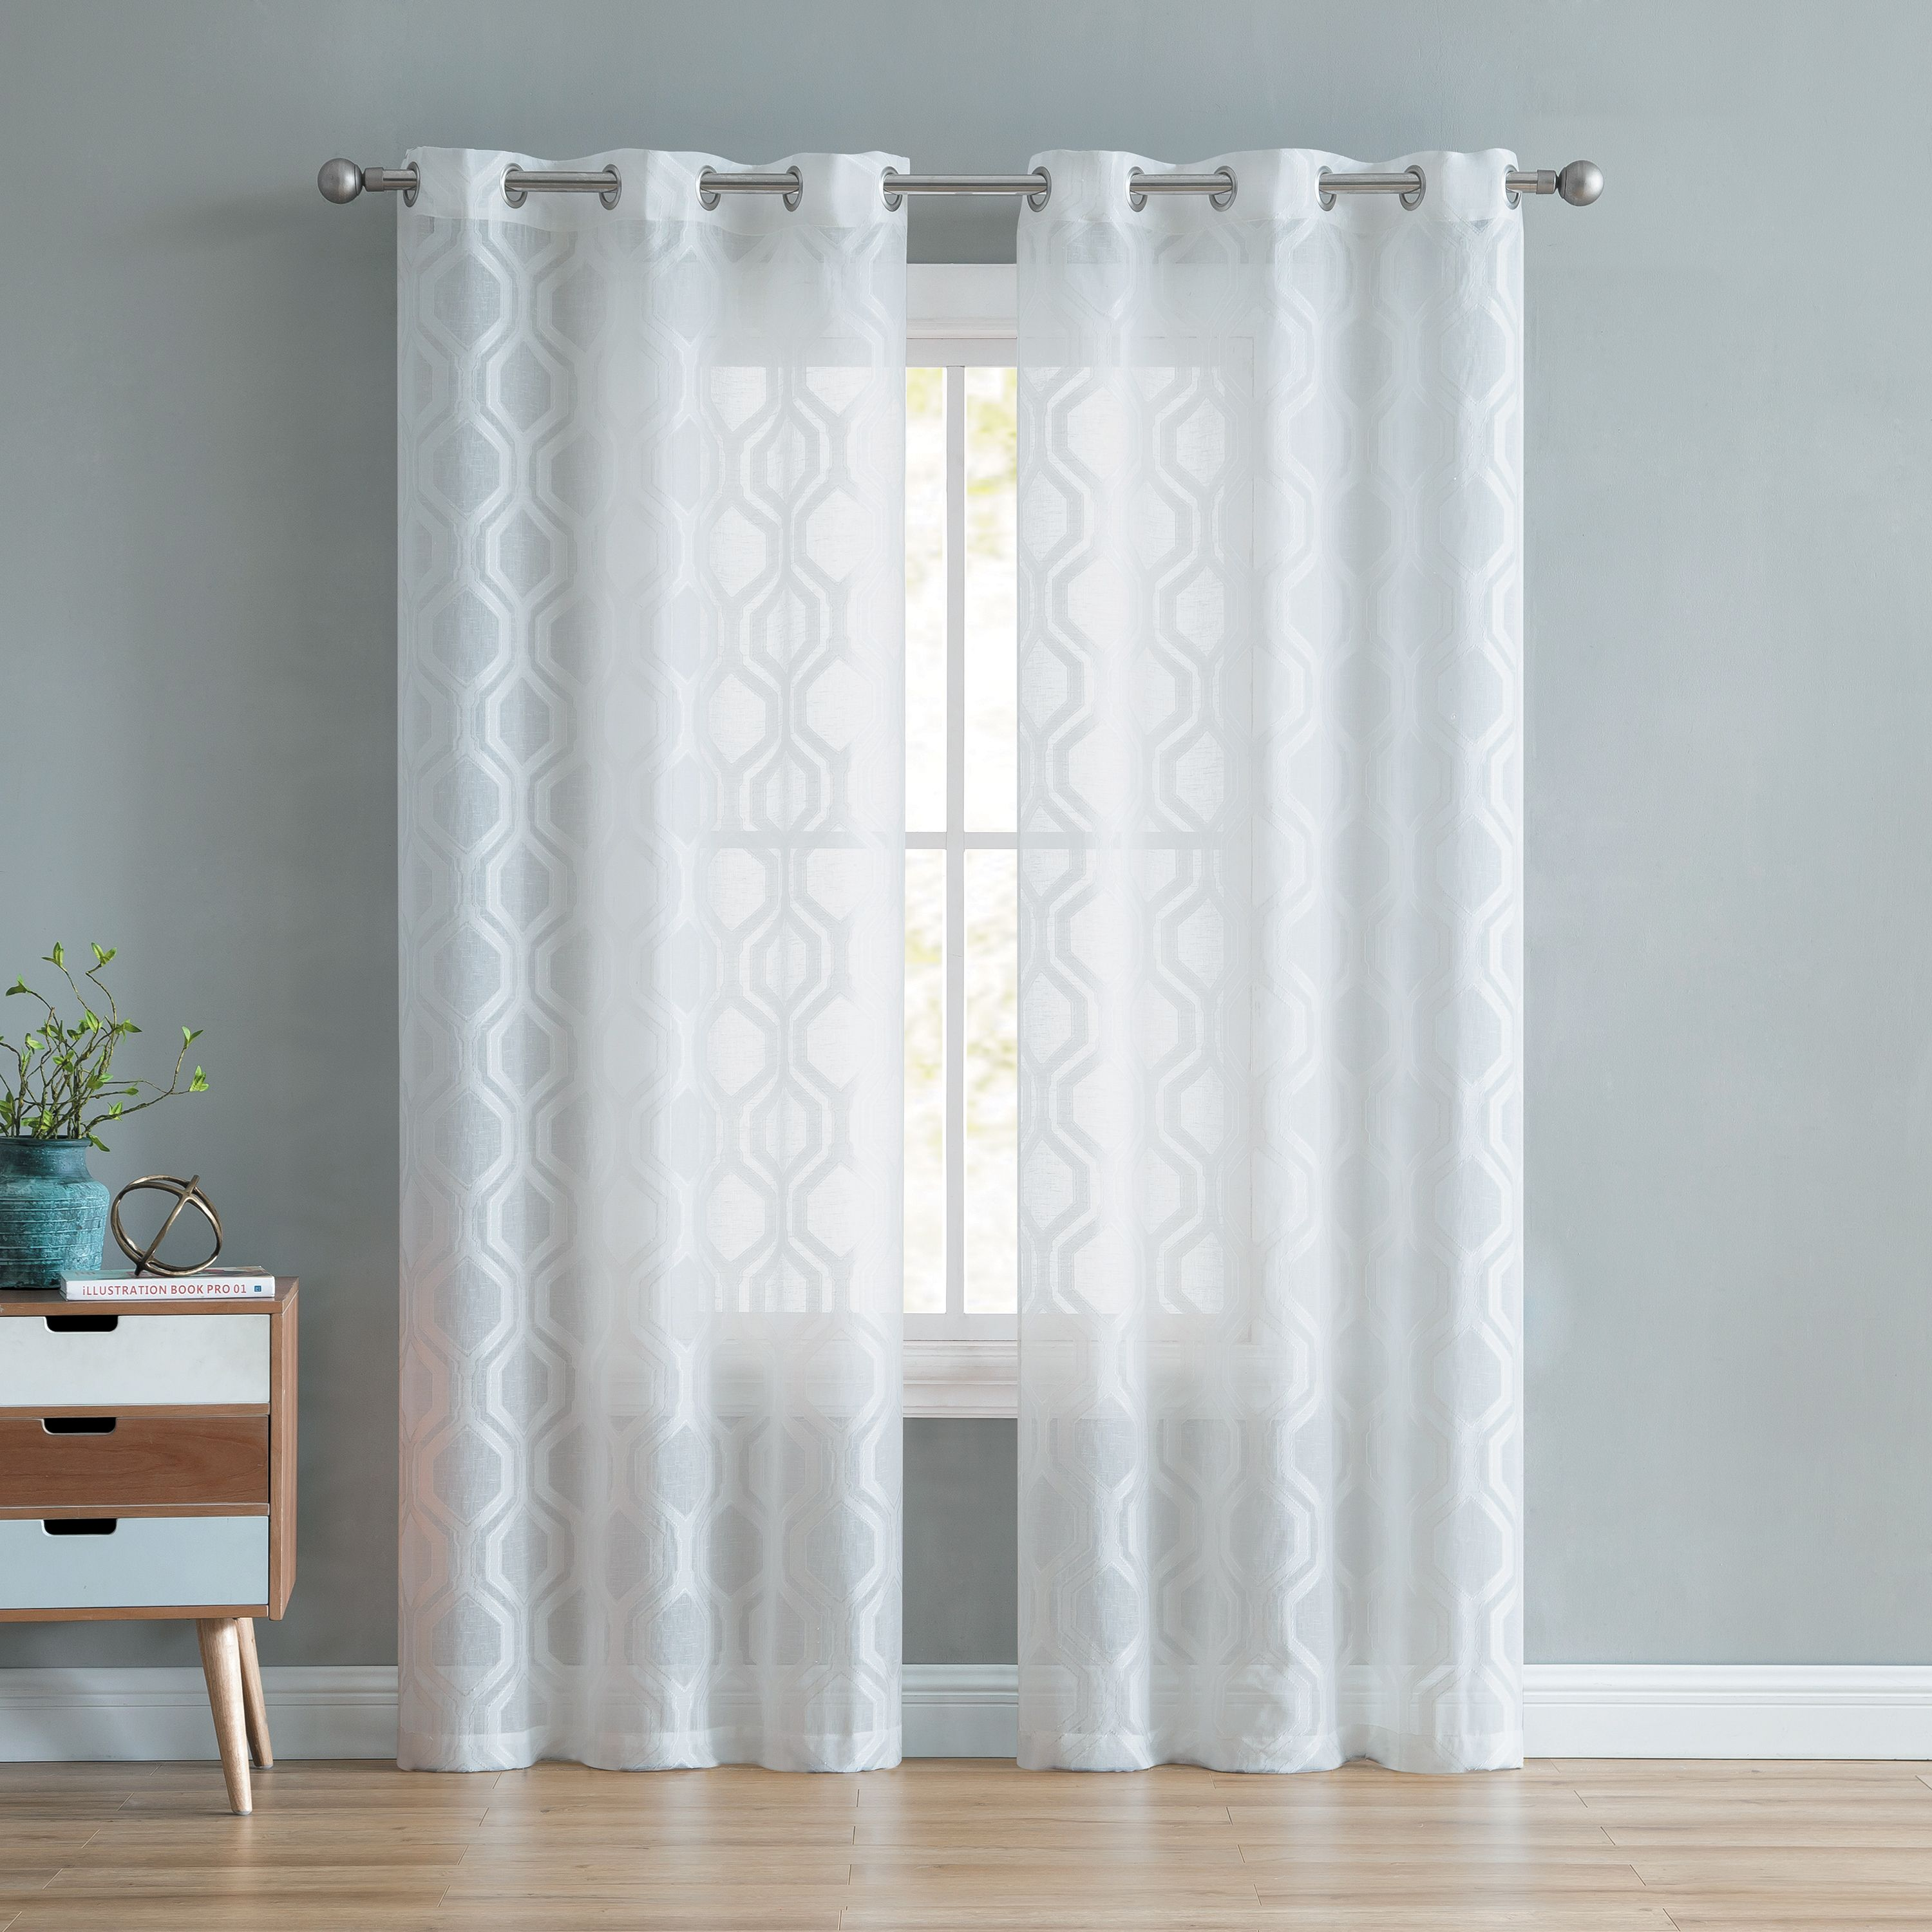 Better Homes and Gardens Ogee Clip Jacquard Window Curtain Panel - Set of 2